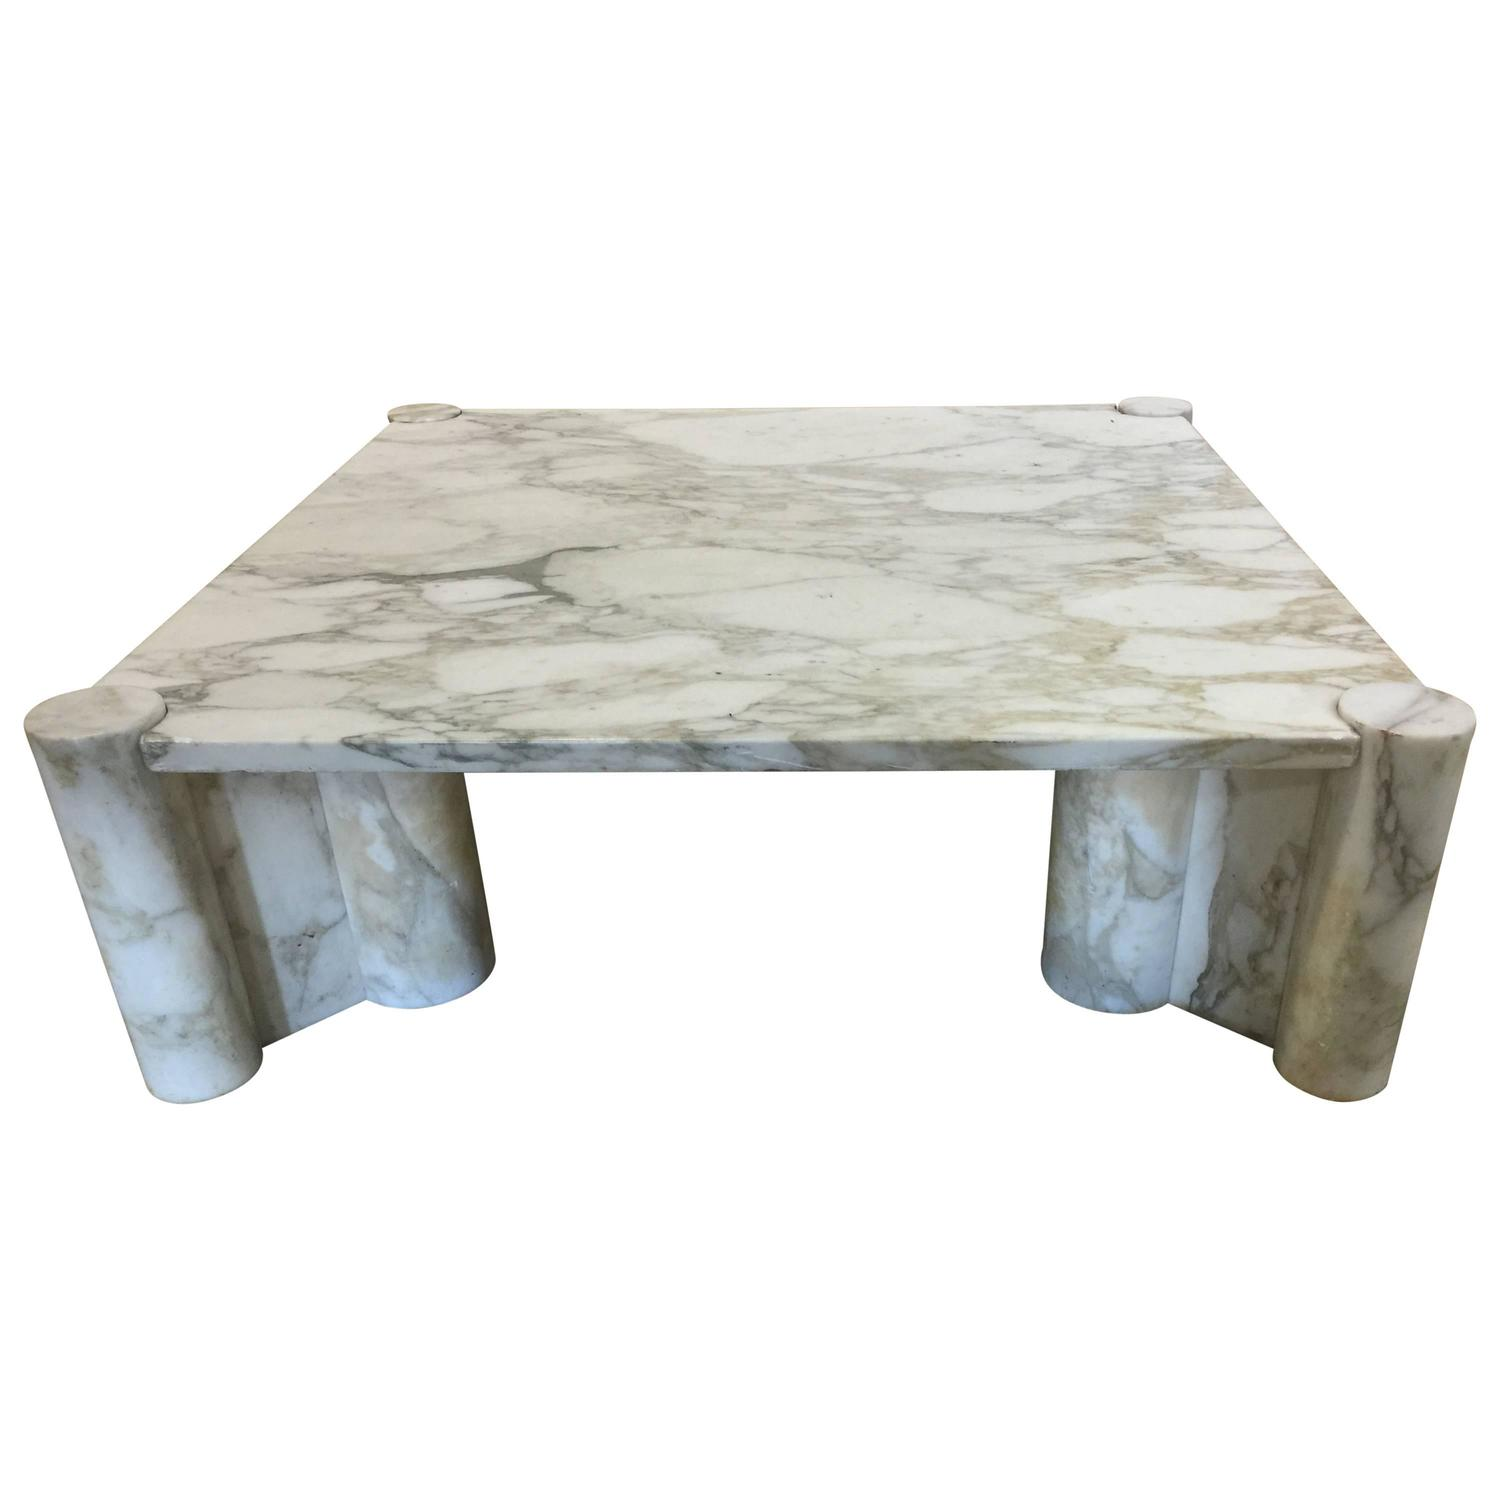 Exceptional Italian Carrara Marble Coffee Table By Gae Aulenti For